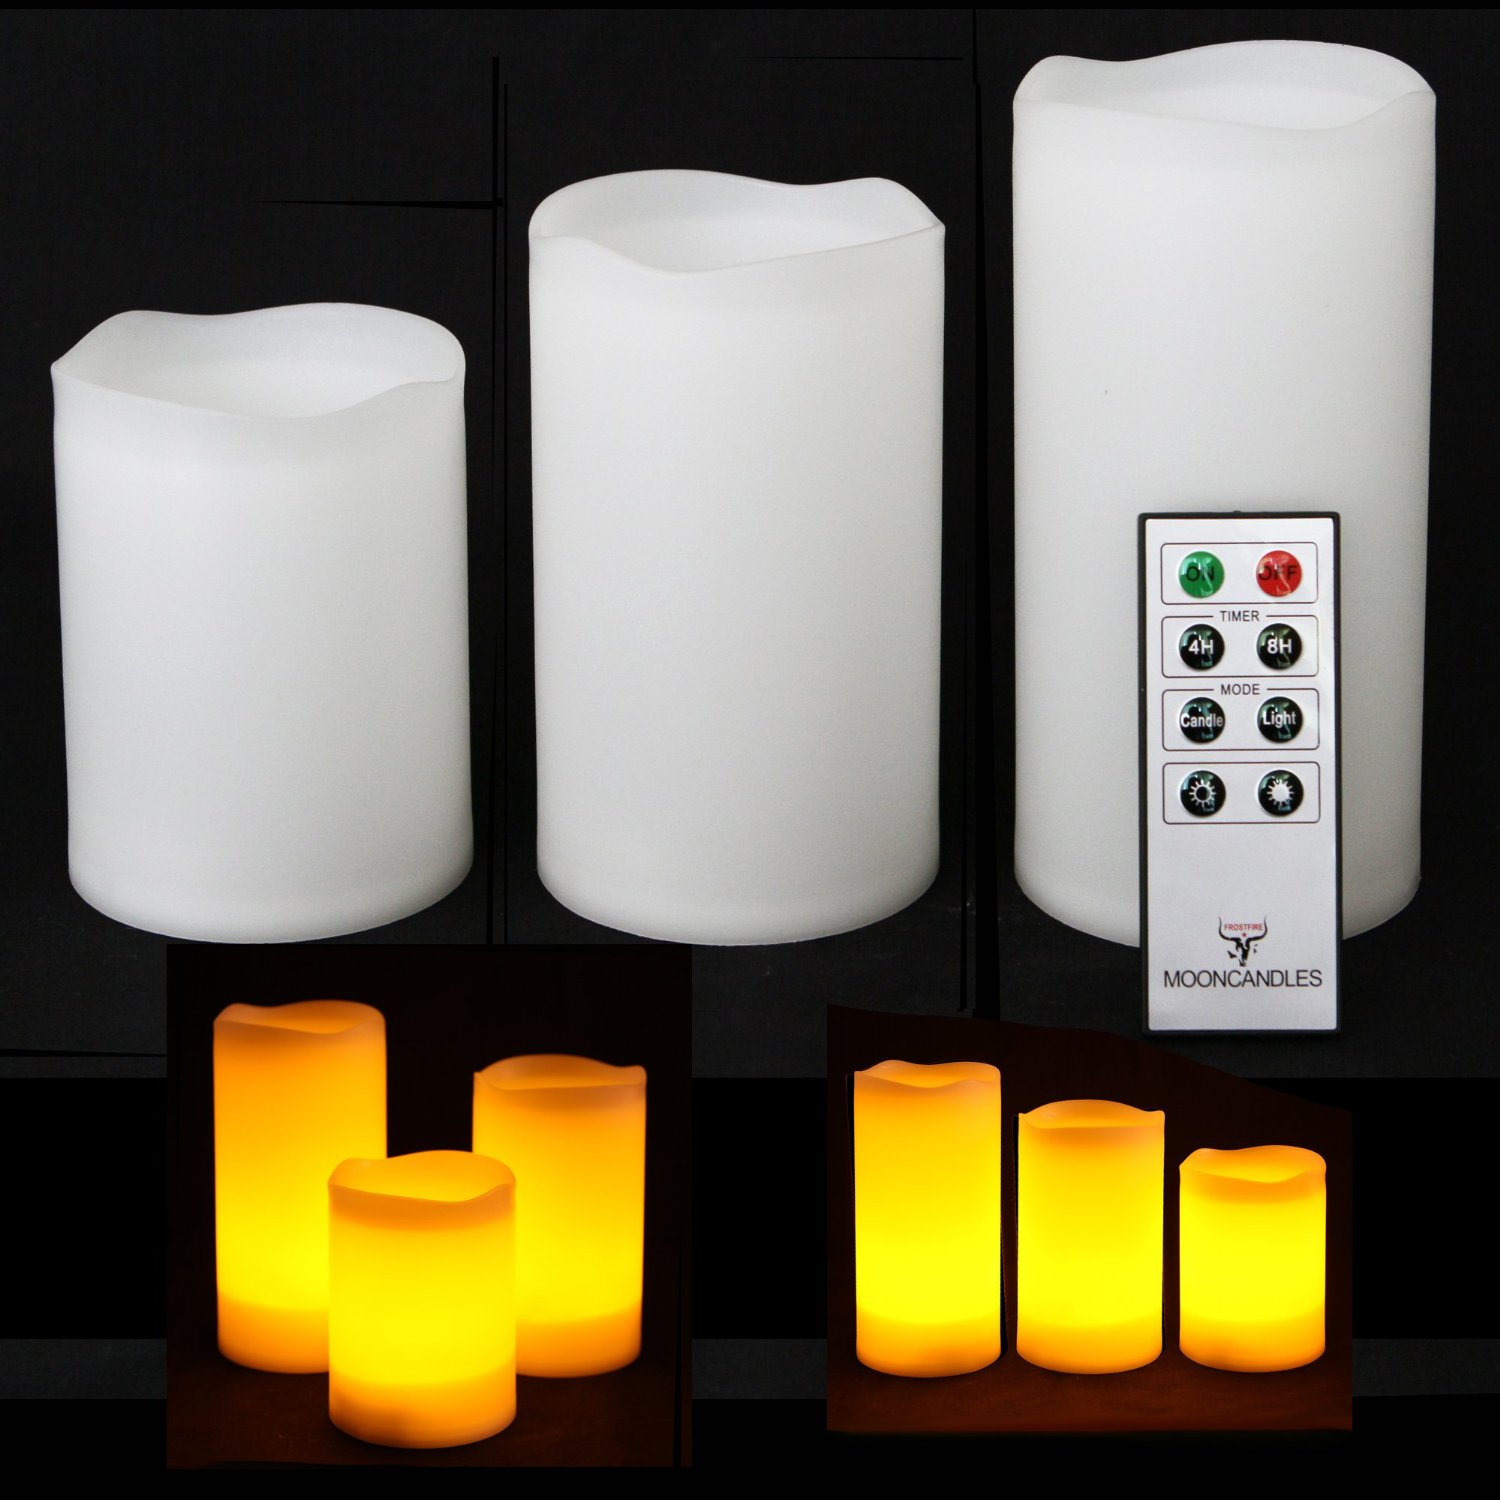 Frostfire Mooncandles 3 Weatherproof Outdoor and Indoor flameless candles with timer for home decoration ideas